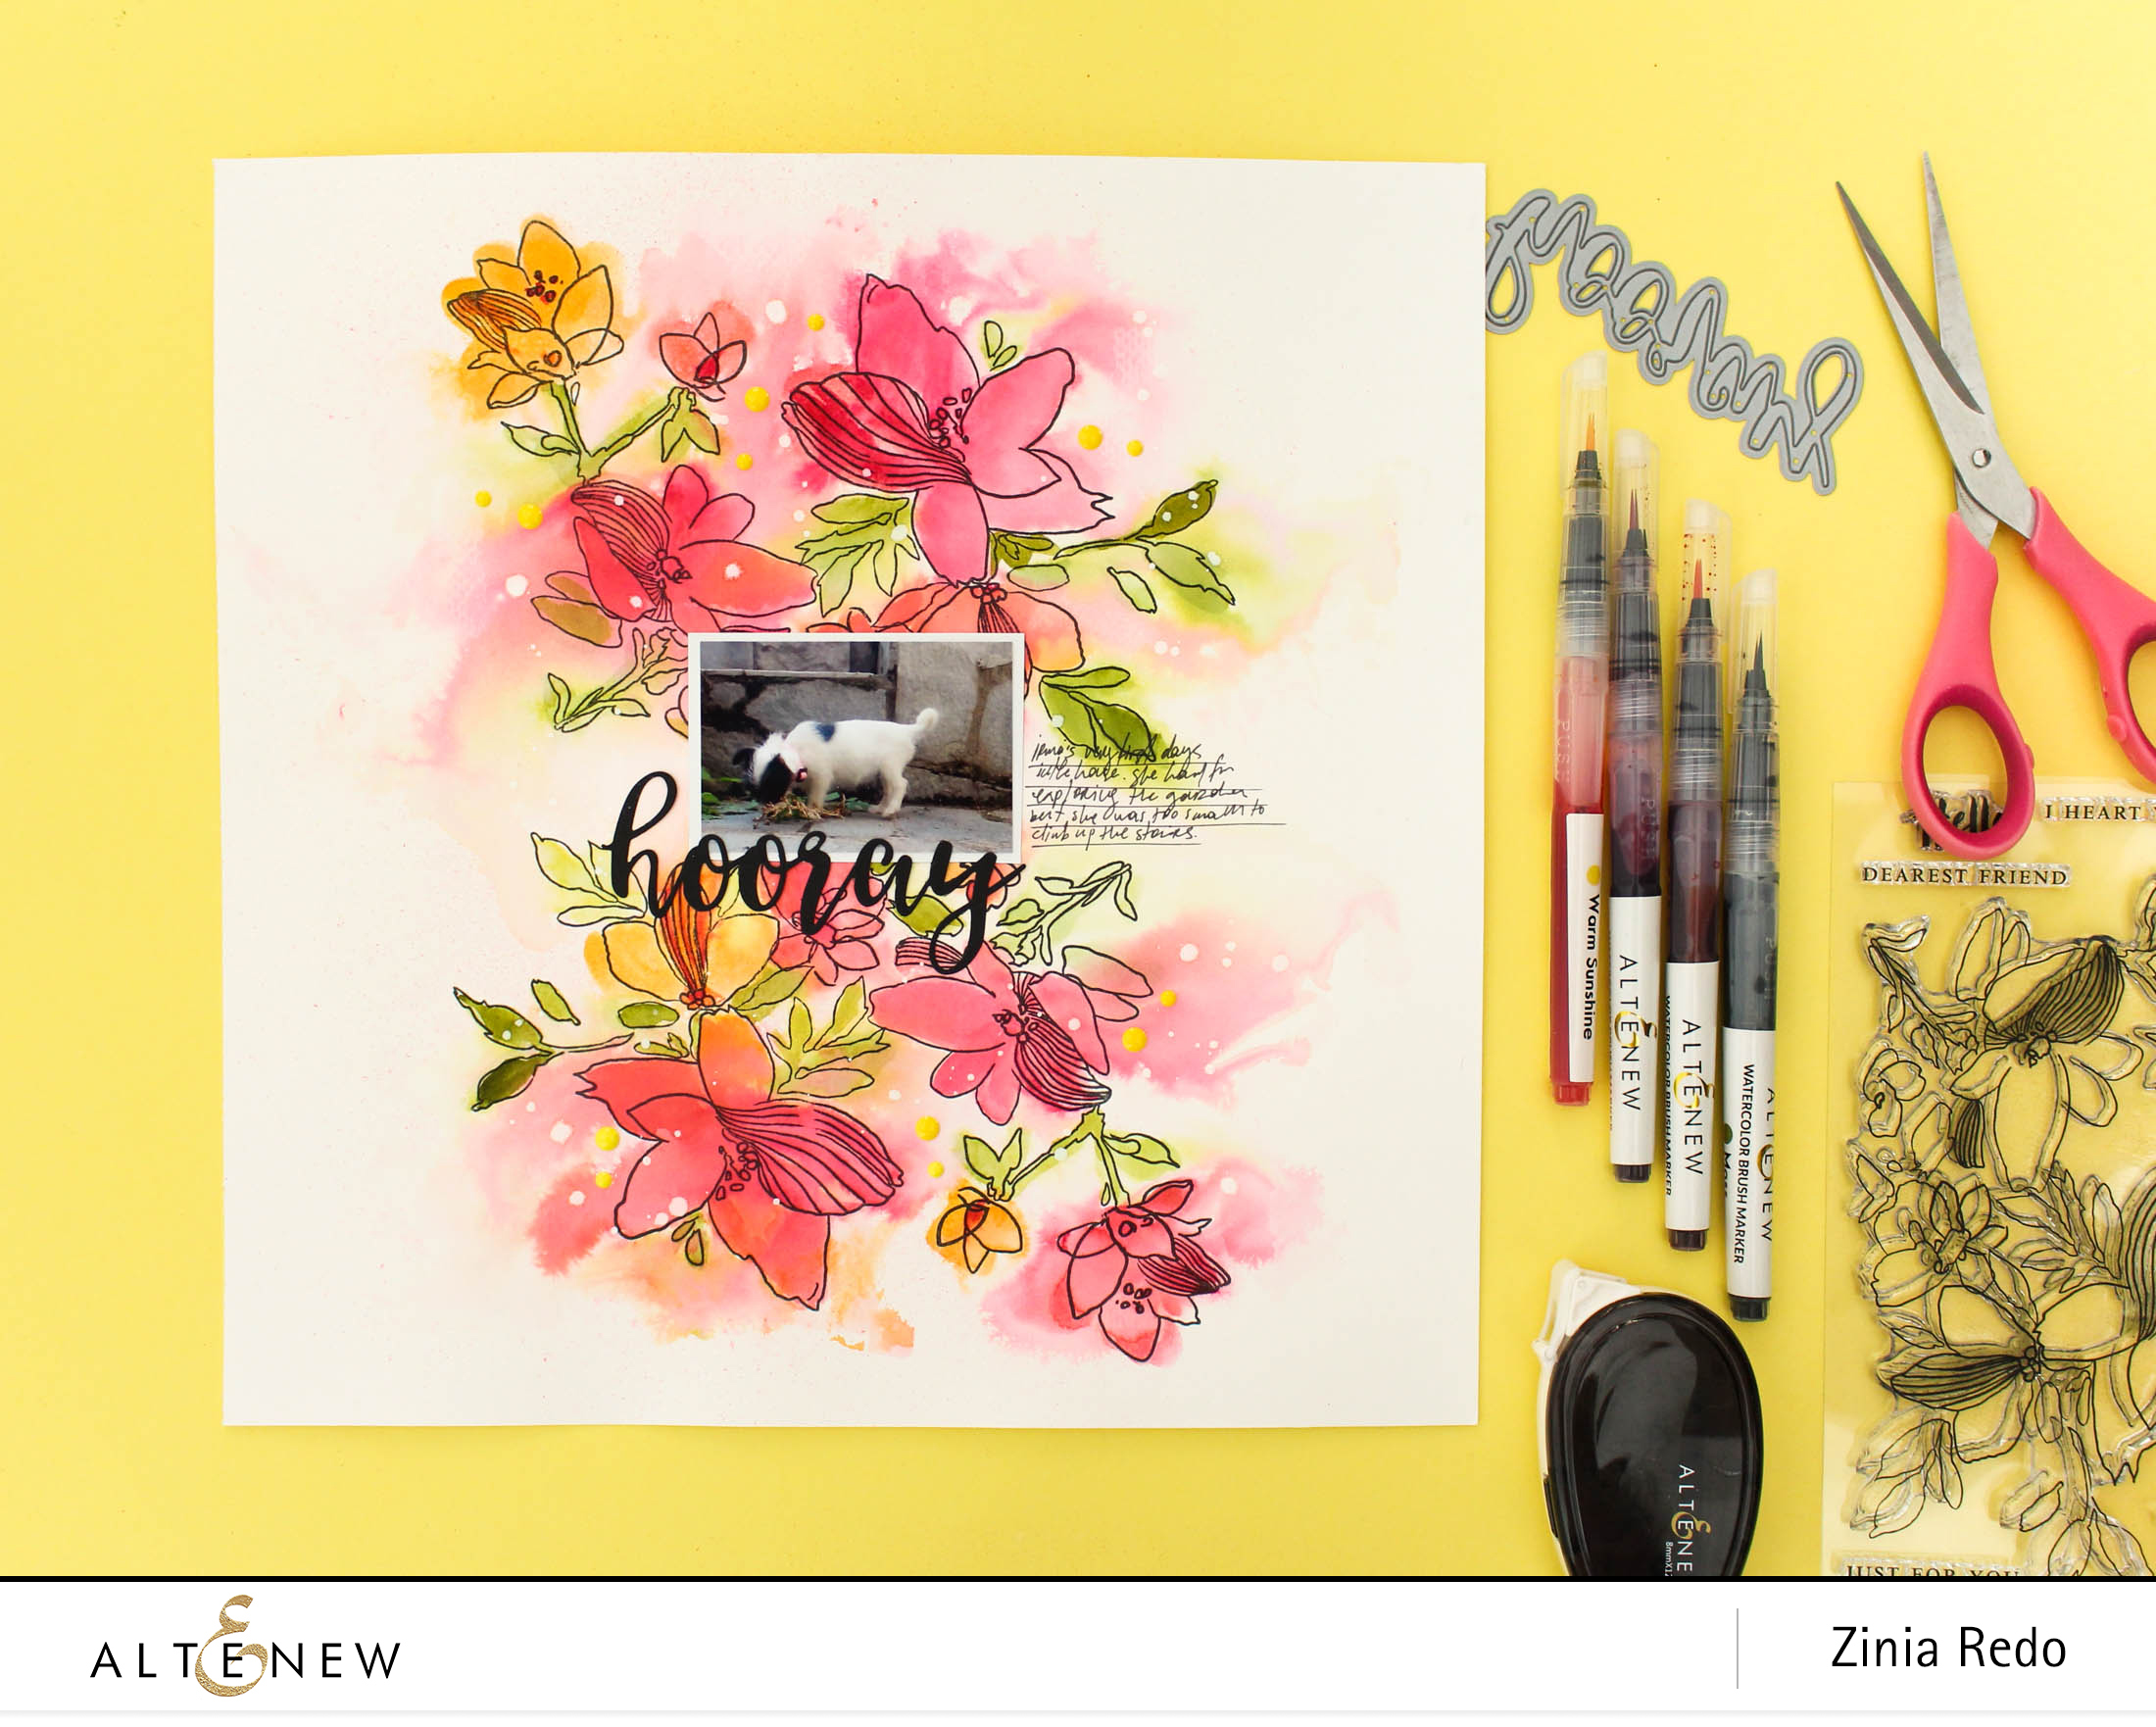 Coloring Outside the Lines @ziniaredo @altenewllc #altenew #scrapbook #scrapbooking #watercolor #watercolors